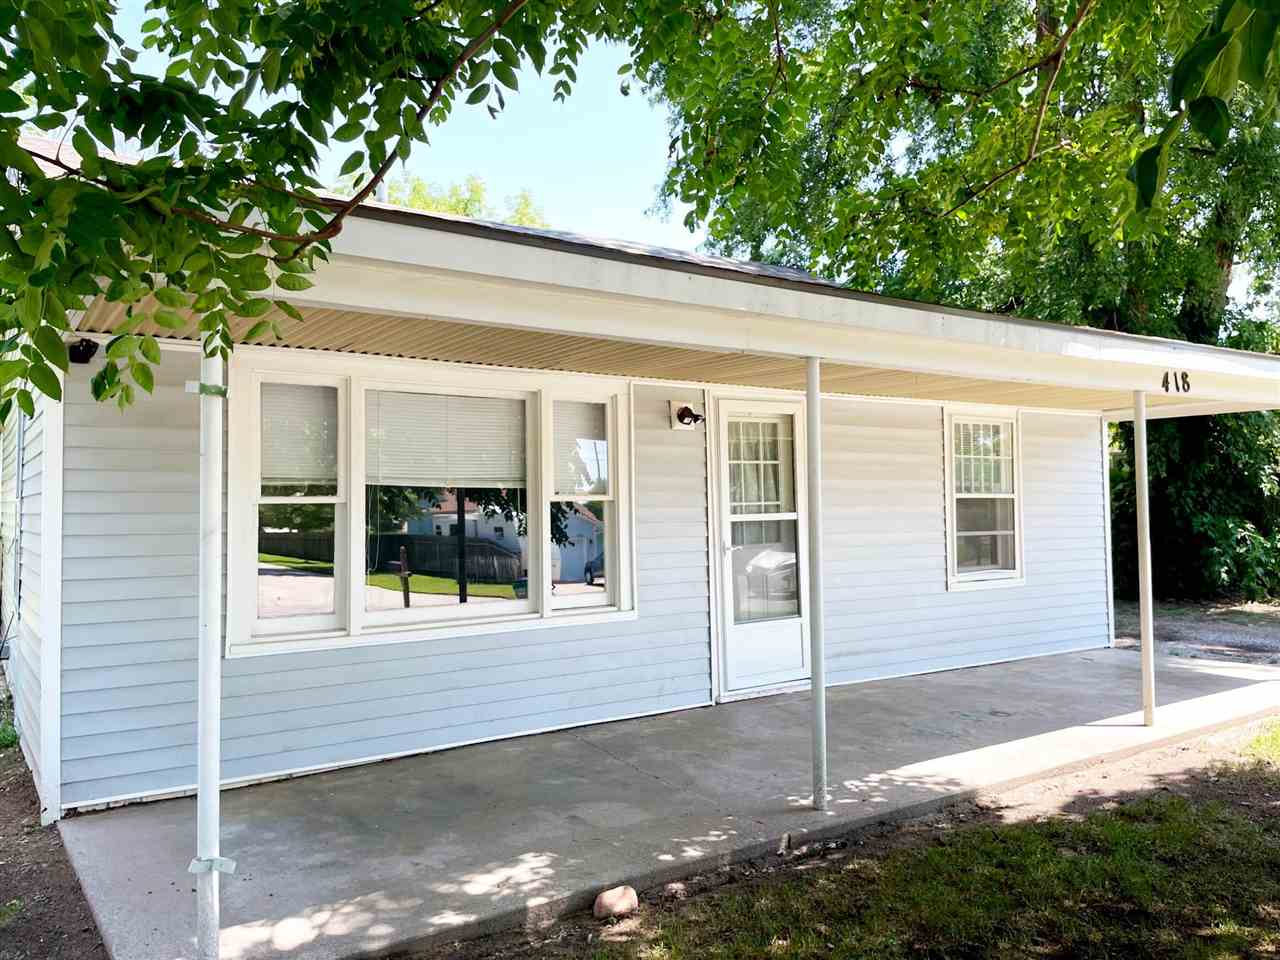 Over 1,000 sq feet with 3 bedrooms, 2 full baths and all kitchen appliances remain.  Don't miss the